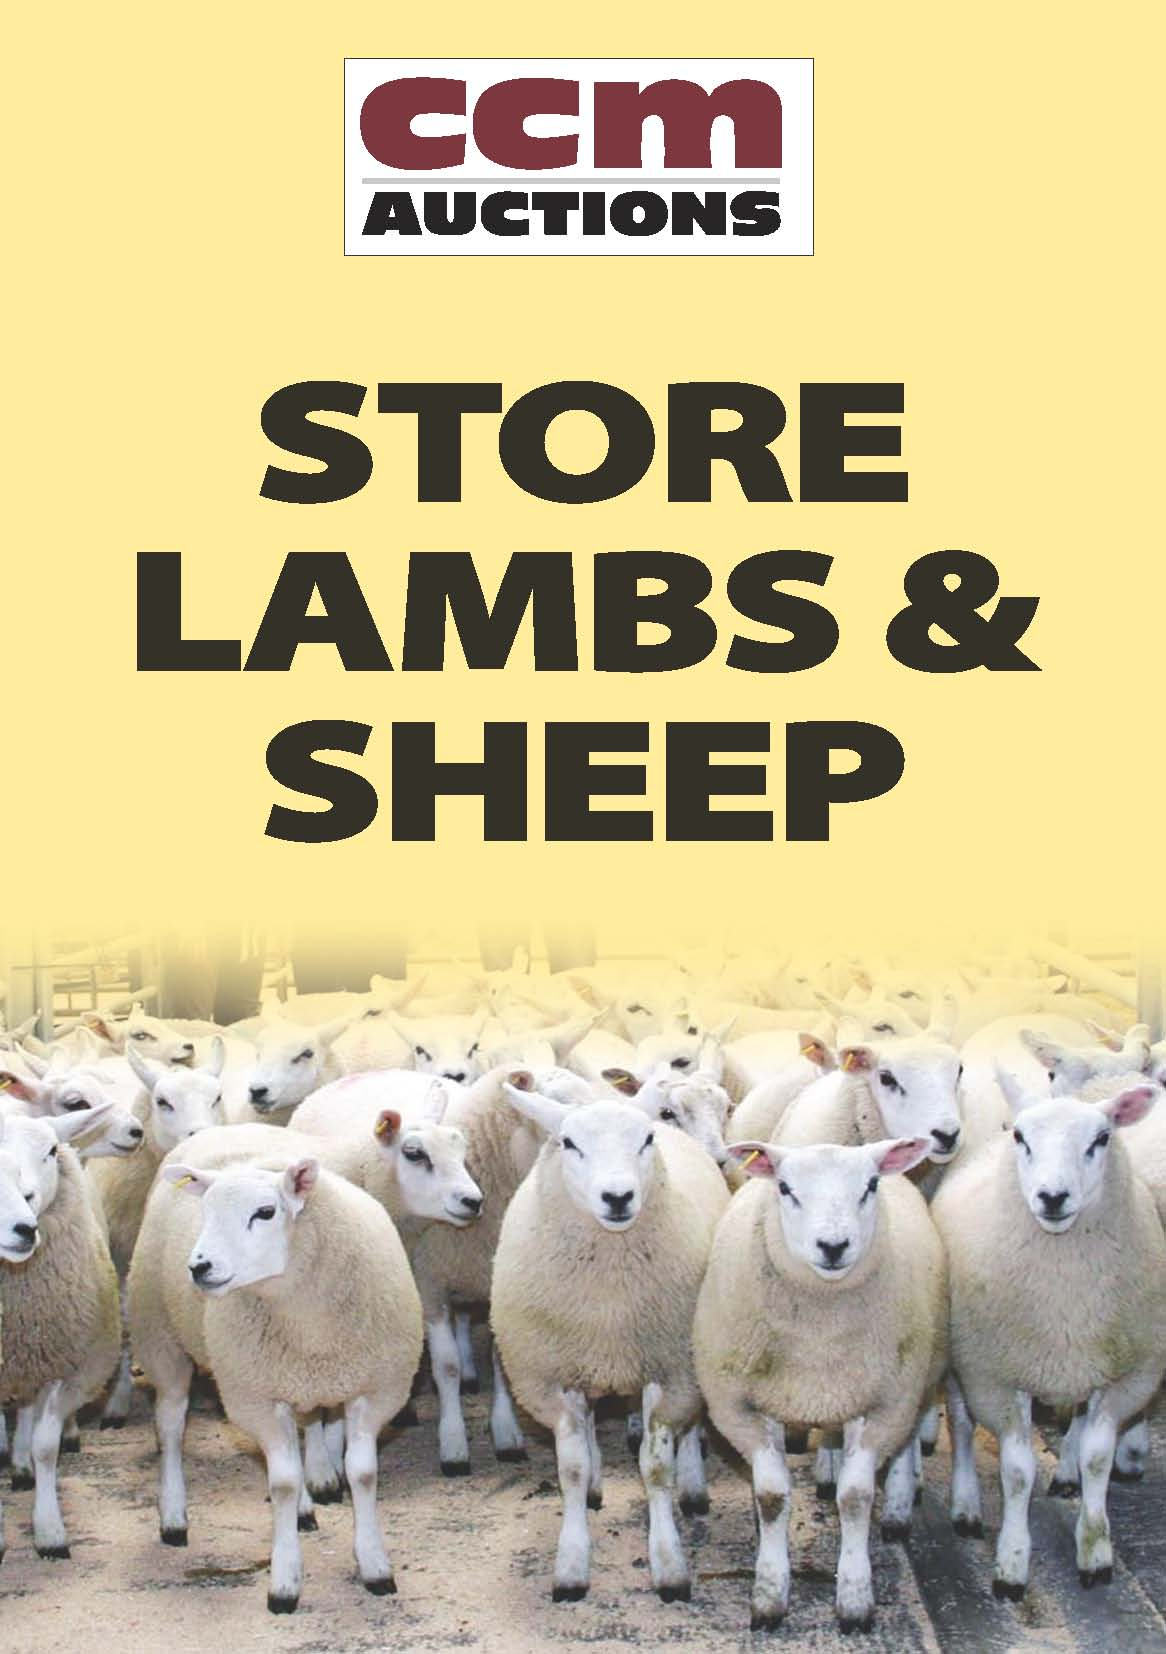 STORE LAMBS & BREEDING SHEEP - WEDNESDAY 29TH JULY 2020